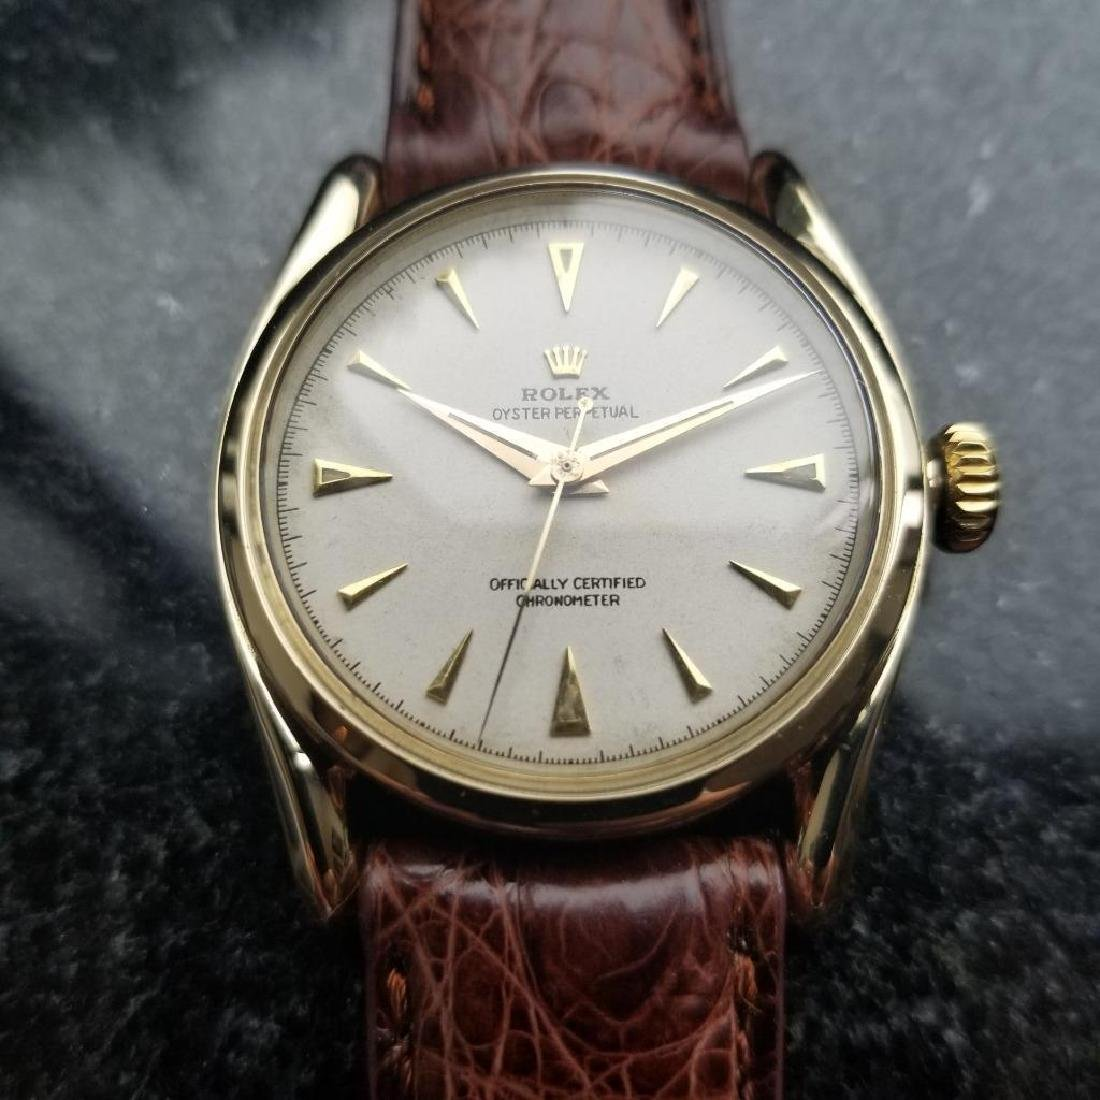 Rolex Oyster Perpetual Vintage 1951 14k Gold 6092